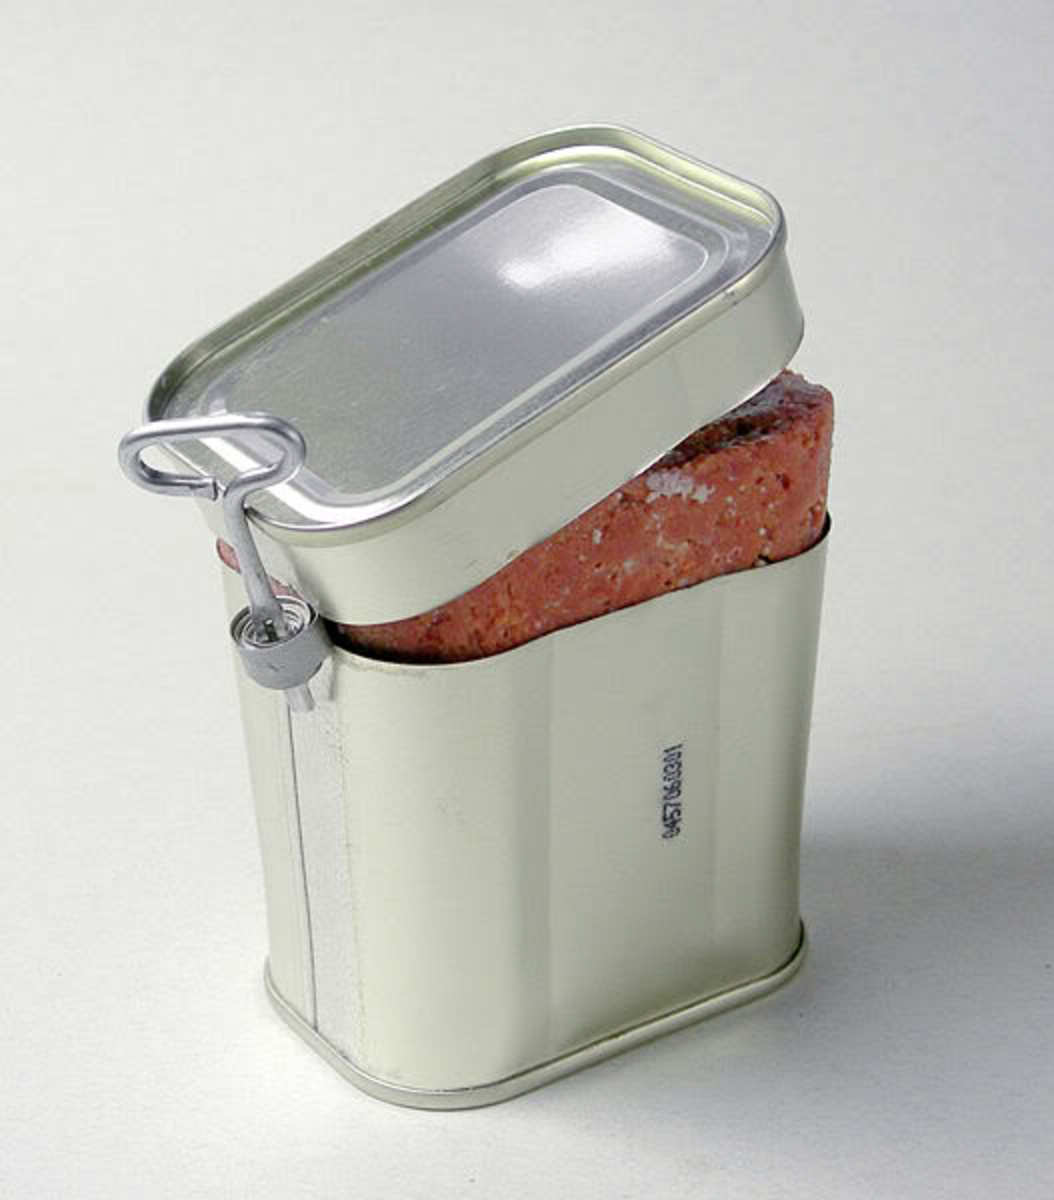 Corned beef in a can.